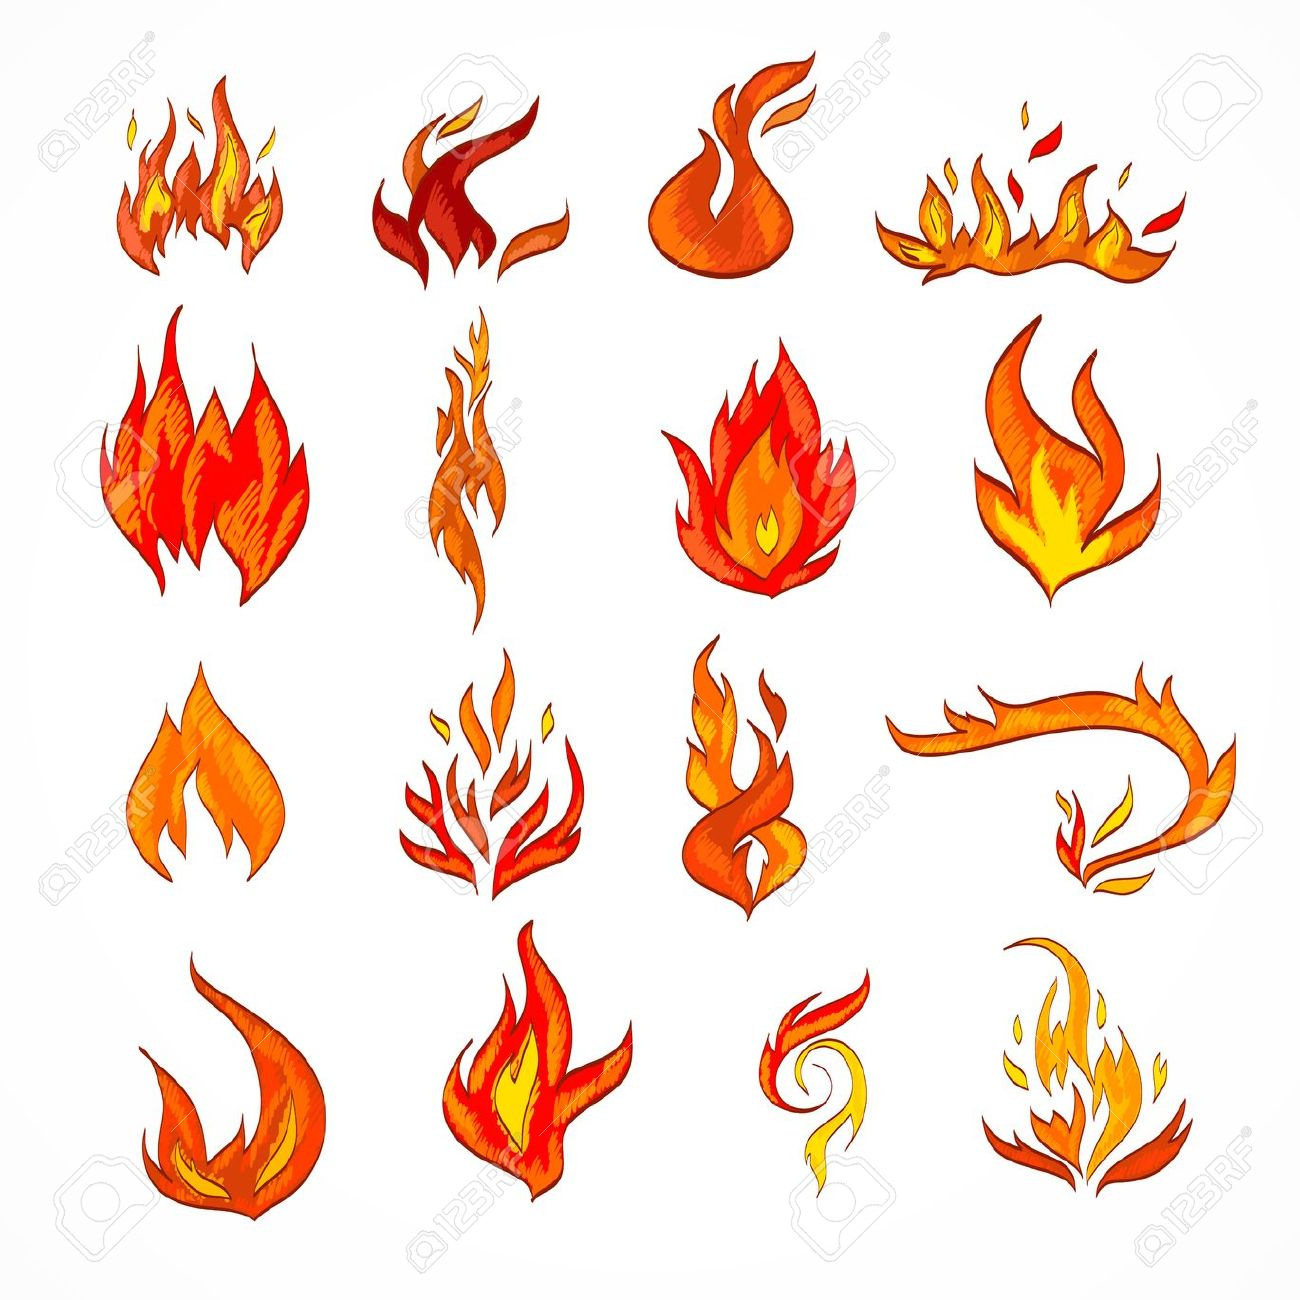 3,517 Campfire Cooking Stock Vector Illustration And Royalty Free.